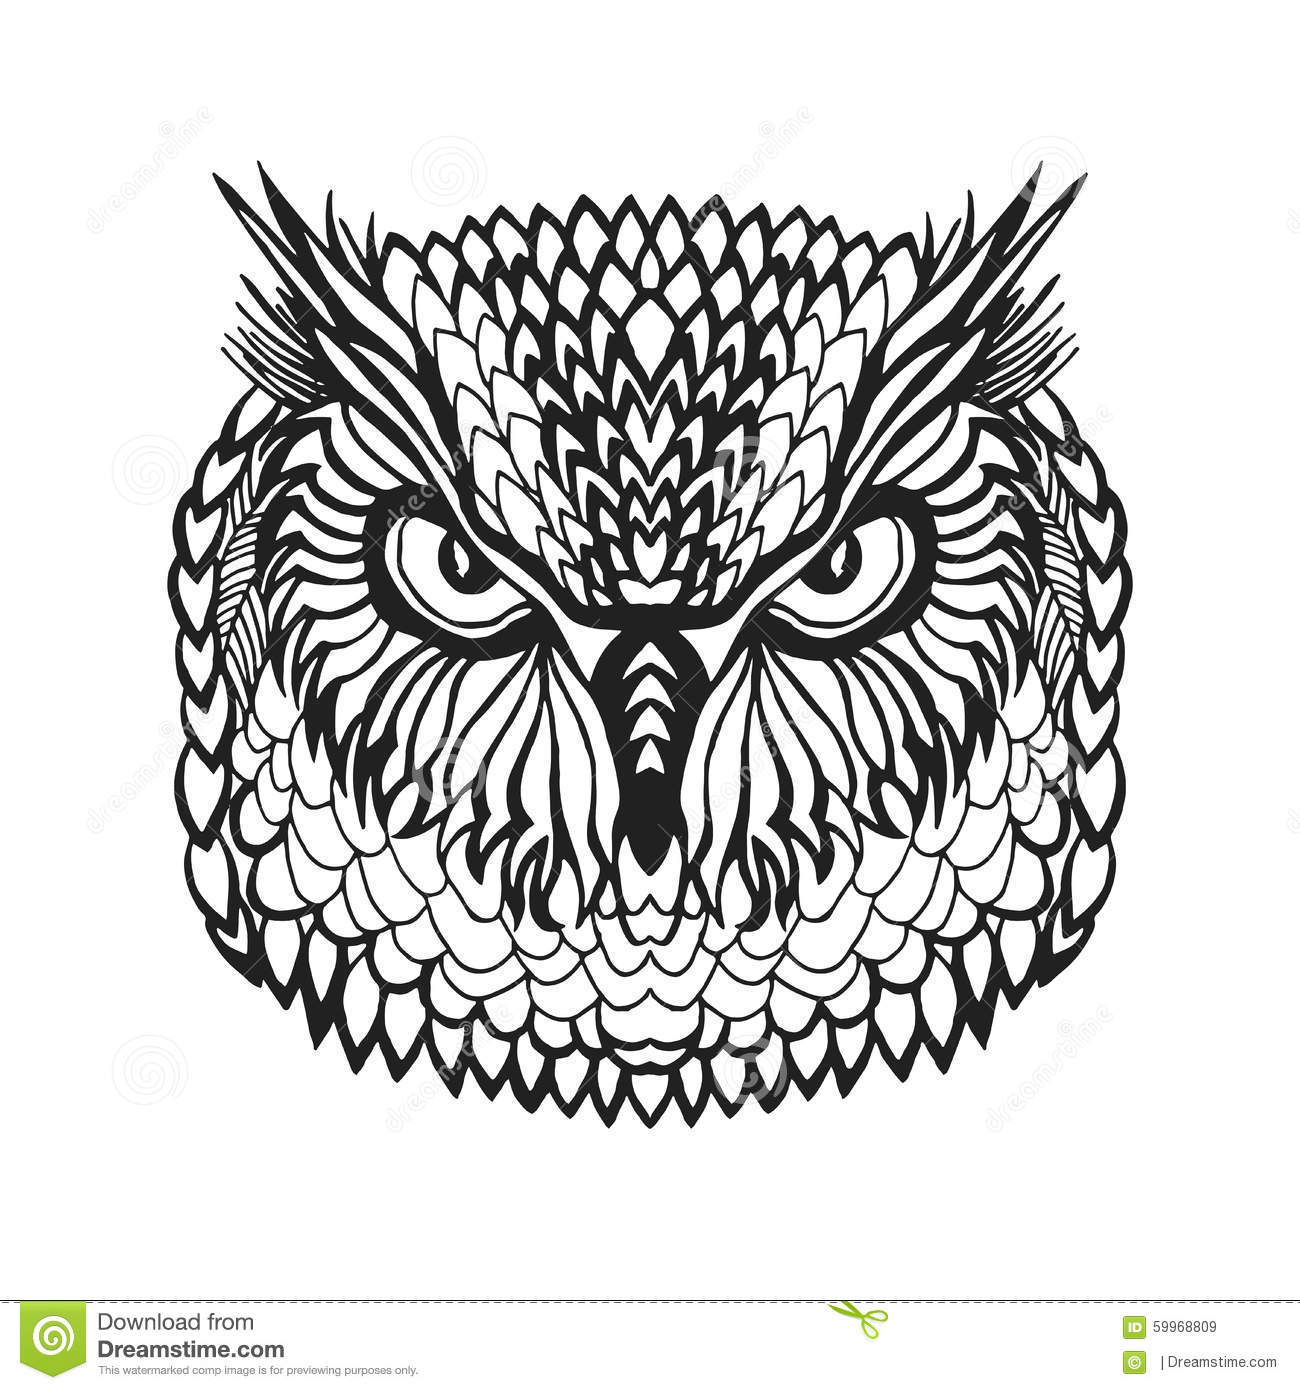 Zentangle Stylized Eagle Owl Head Tribal Sketch For Tattoo Or T shirt Stock Vector Image